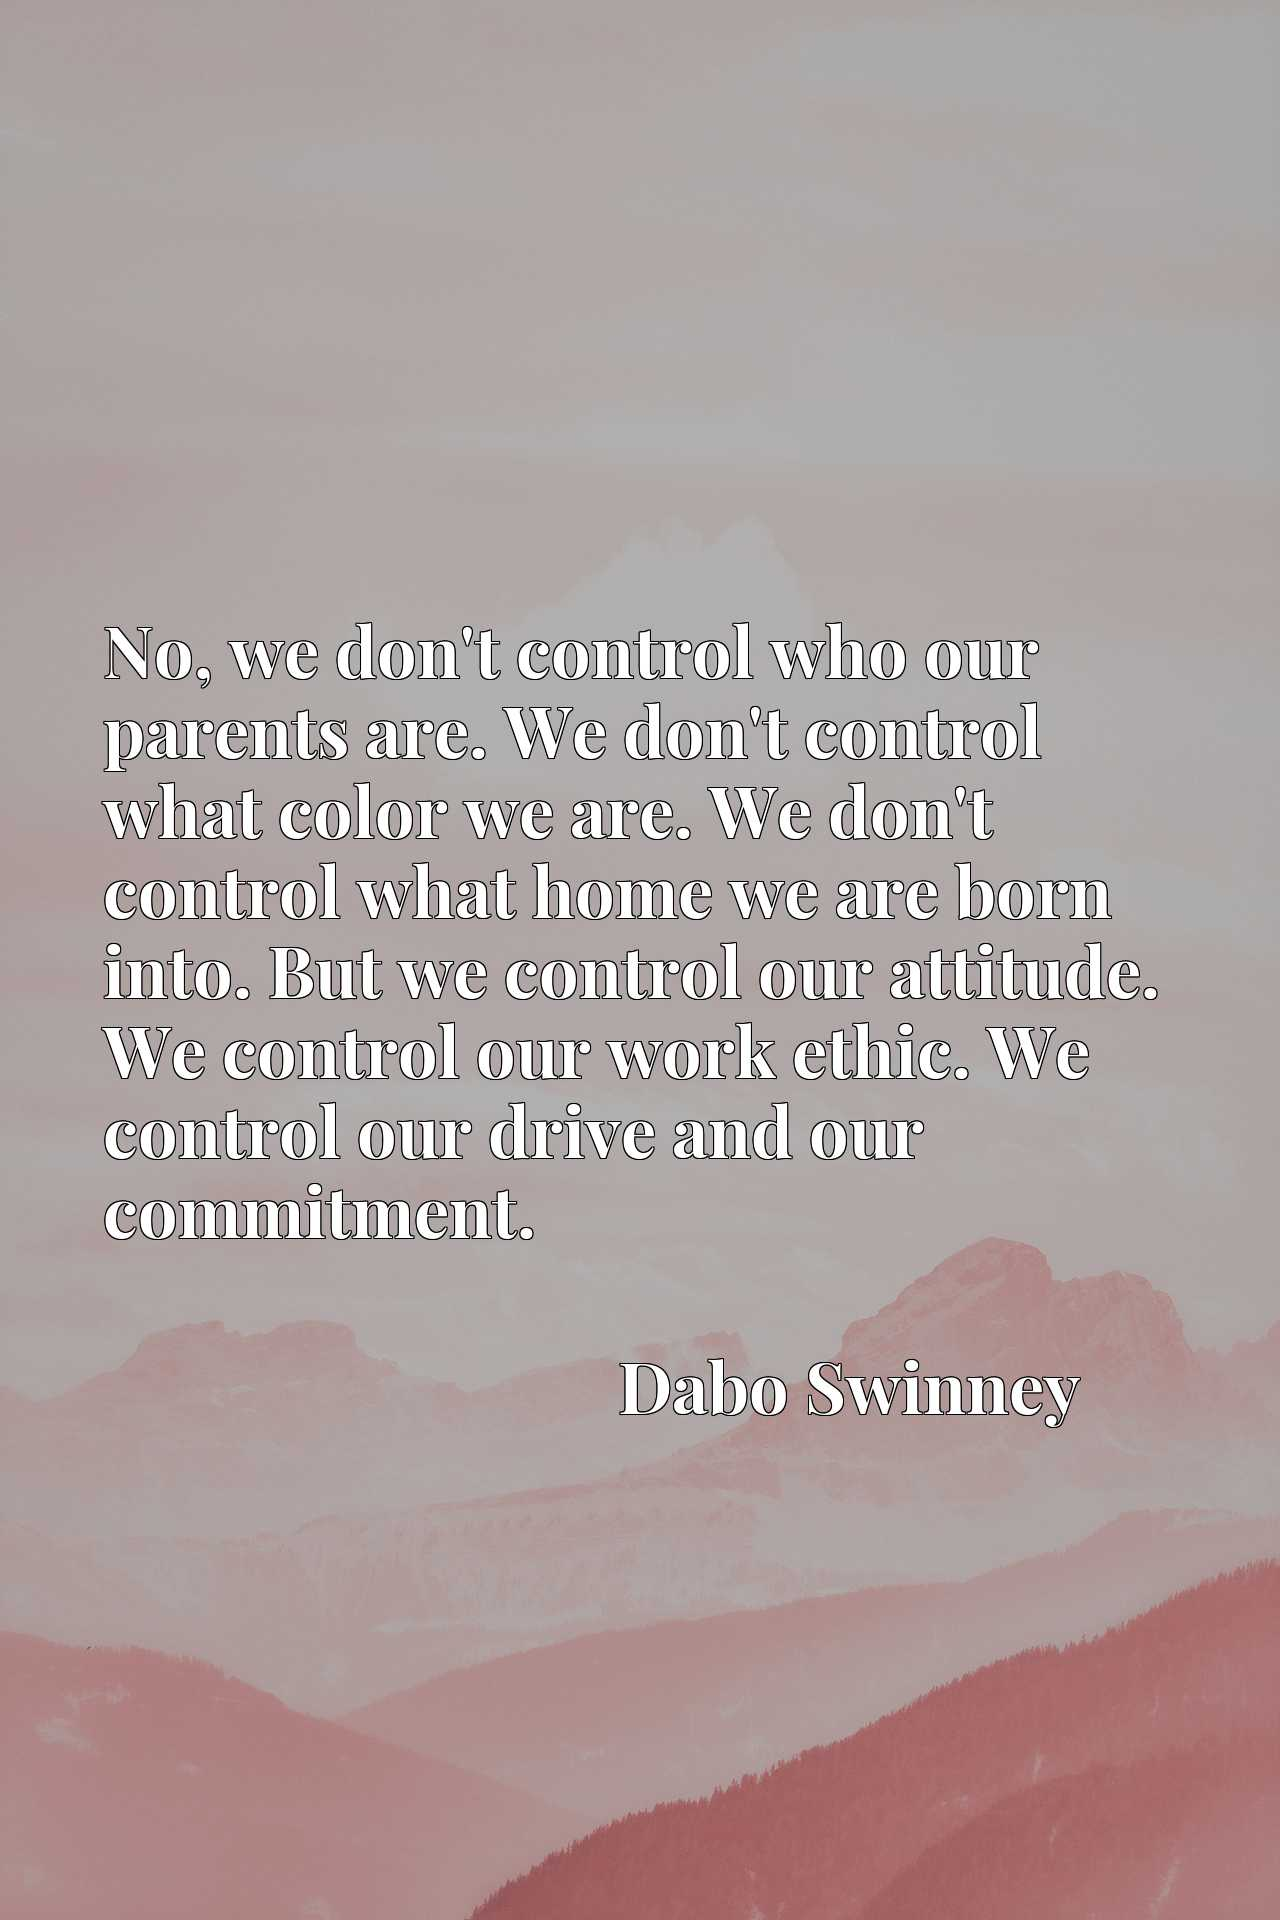 No, we don't control who our parents are. We don't control what color we are. We don't control what home we are born into. But we control our attitude. We control our work ethic. We control our drive and our commitment.